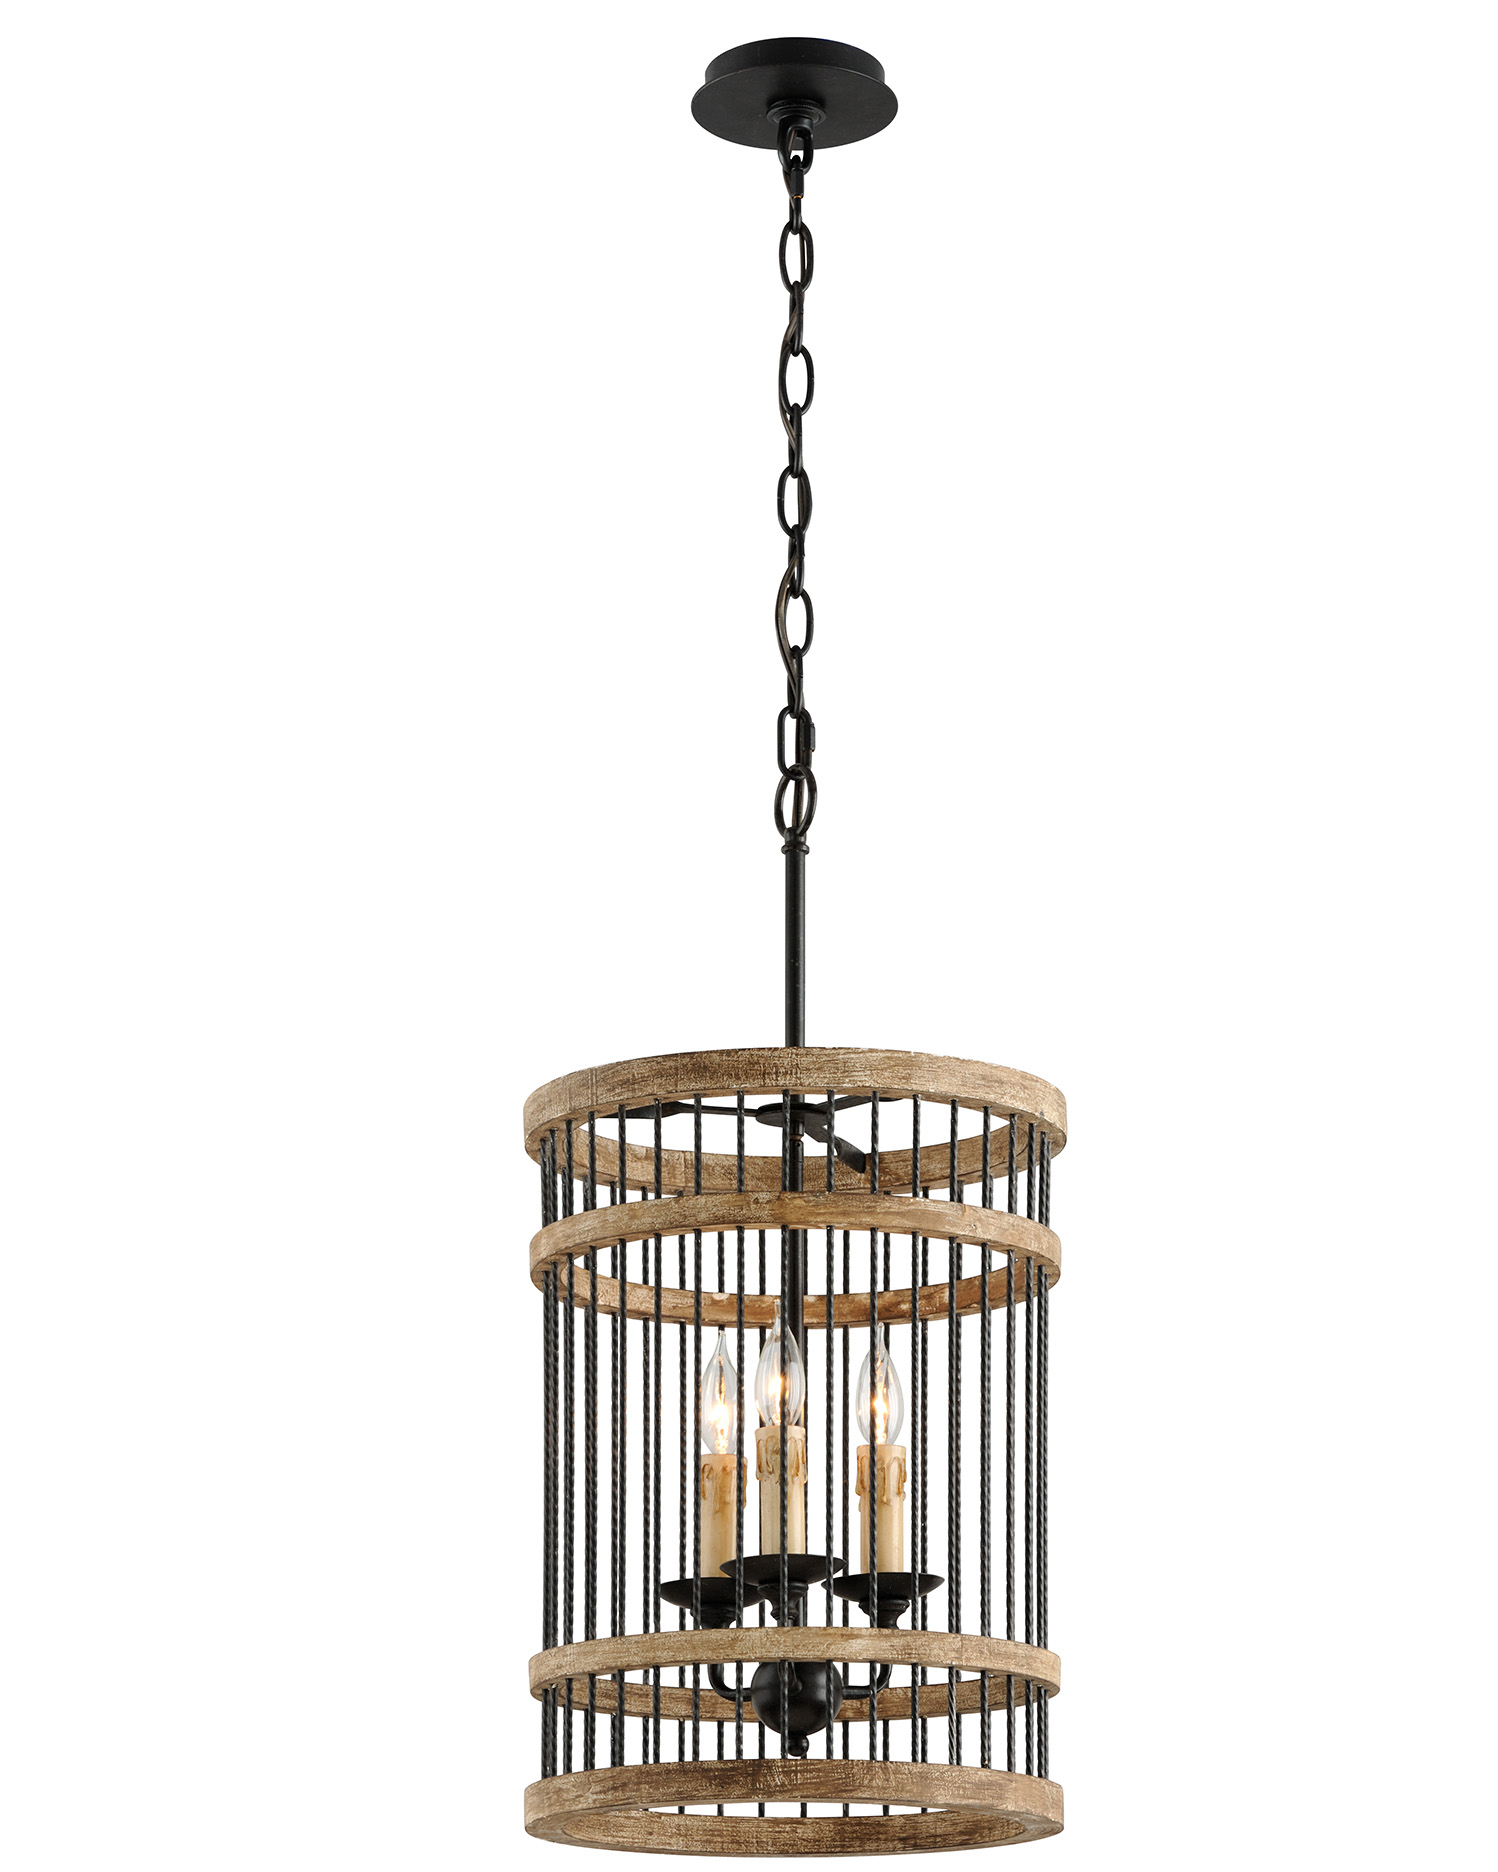 Introducing the Vineyard collection from Troy Lighting.